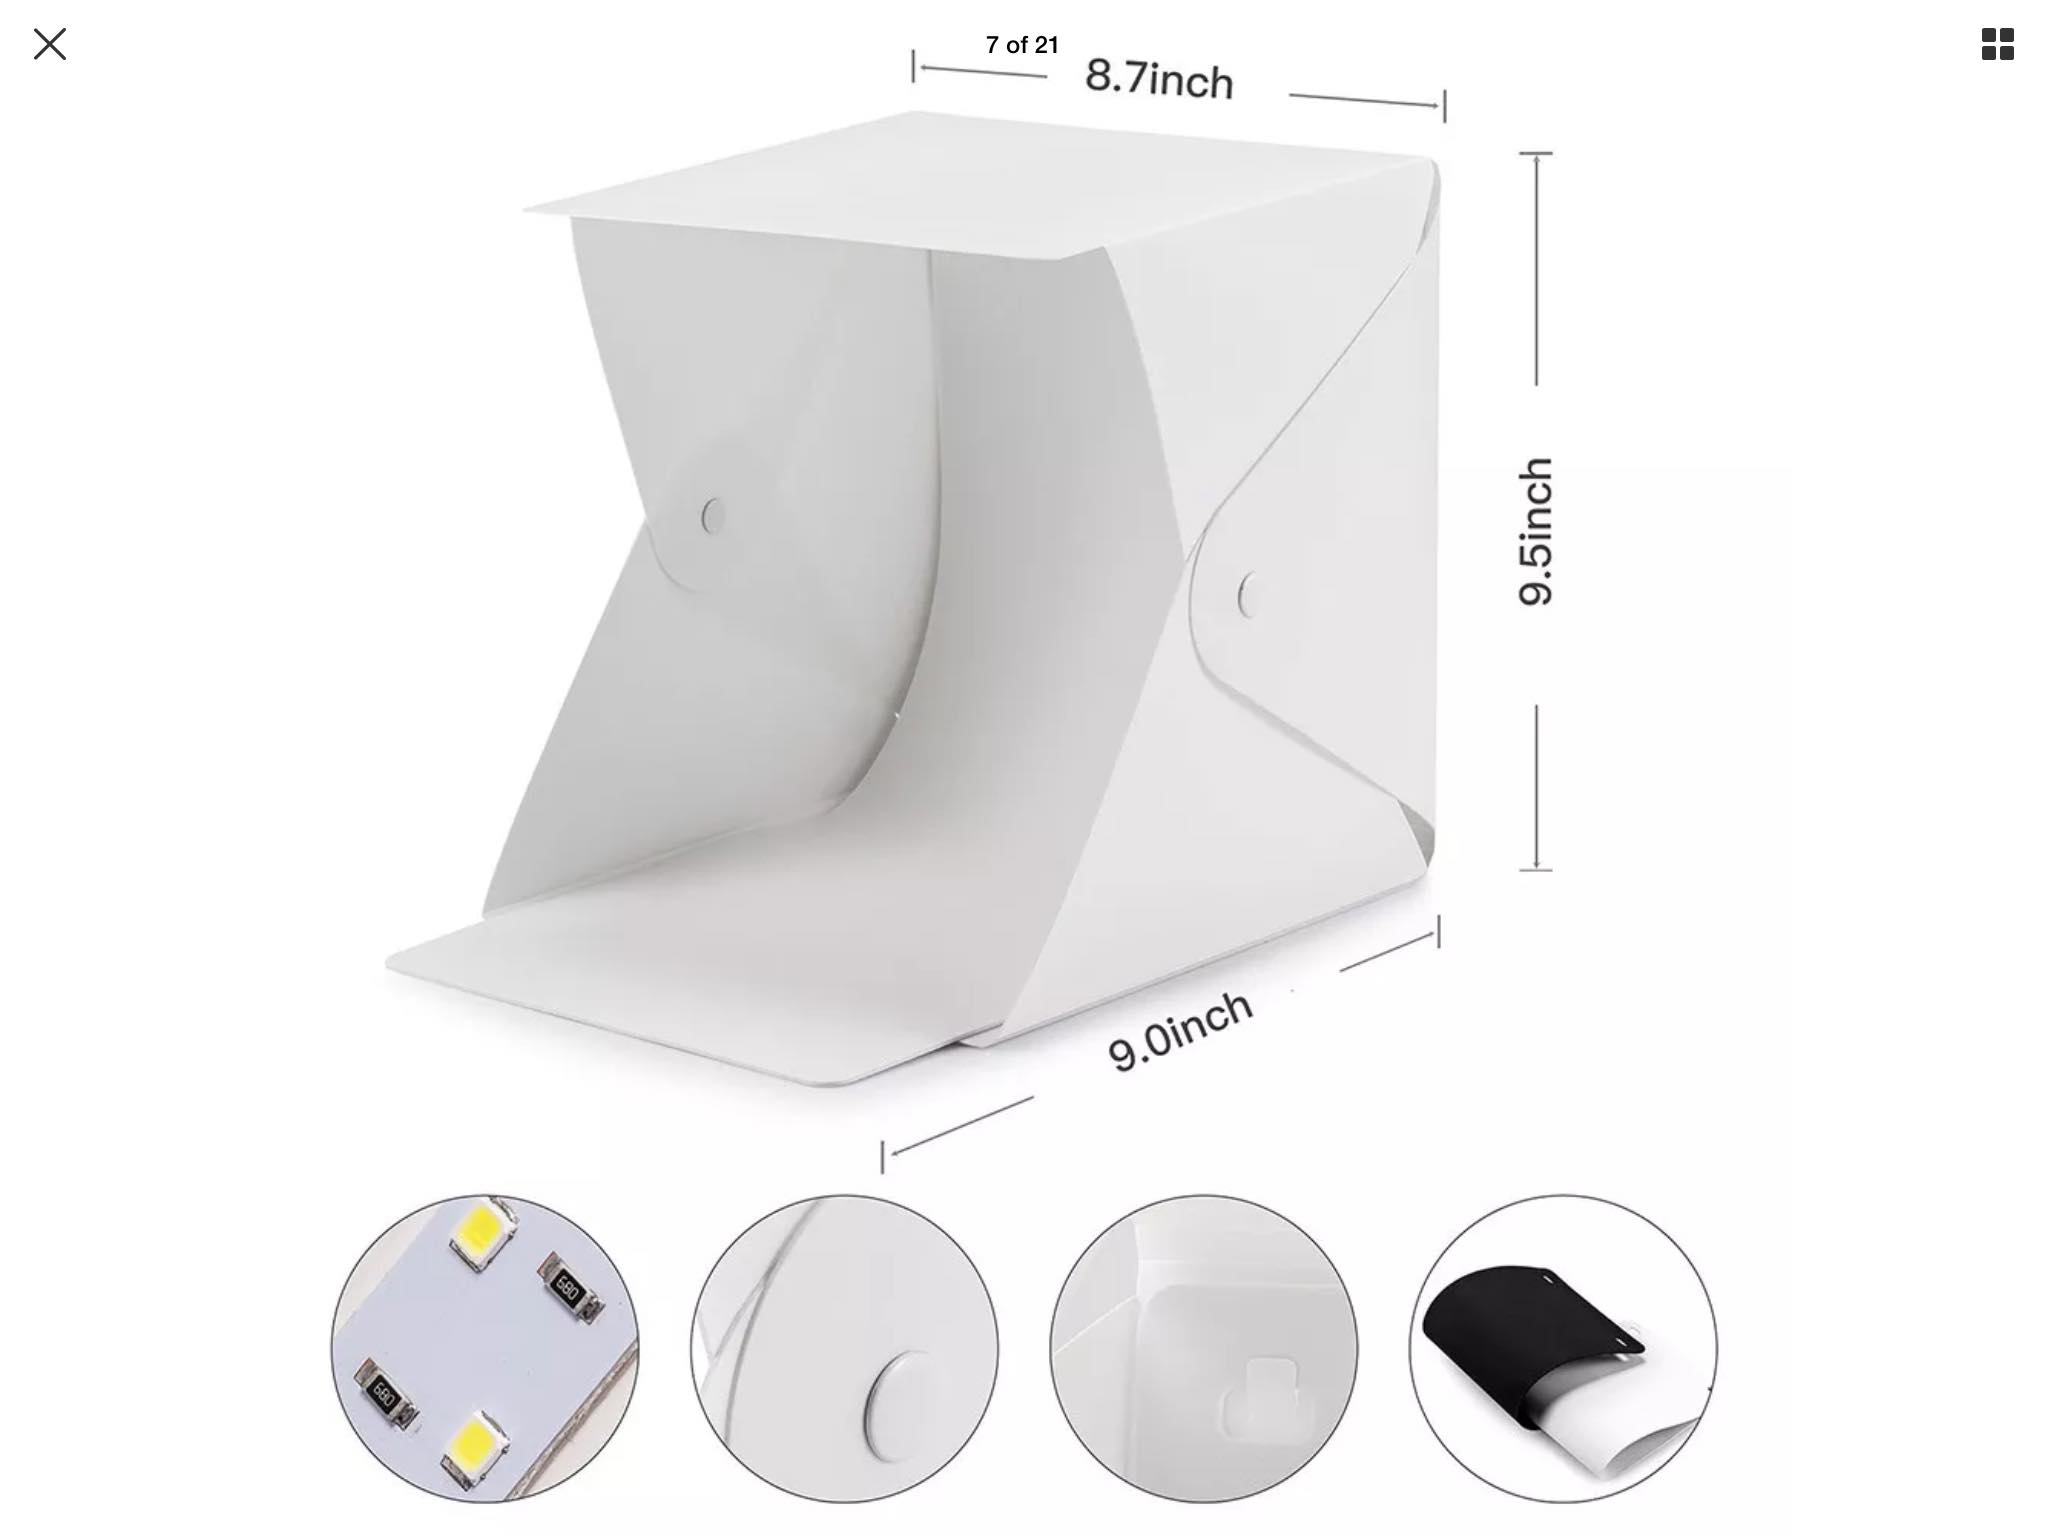 Portable Photo Studio Lightbox for model car photography